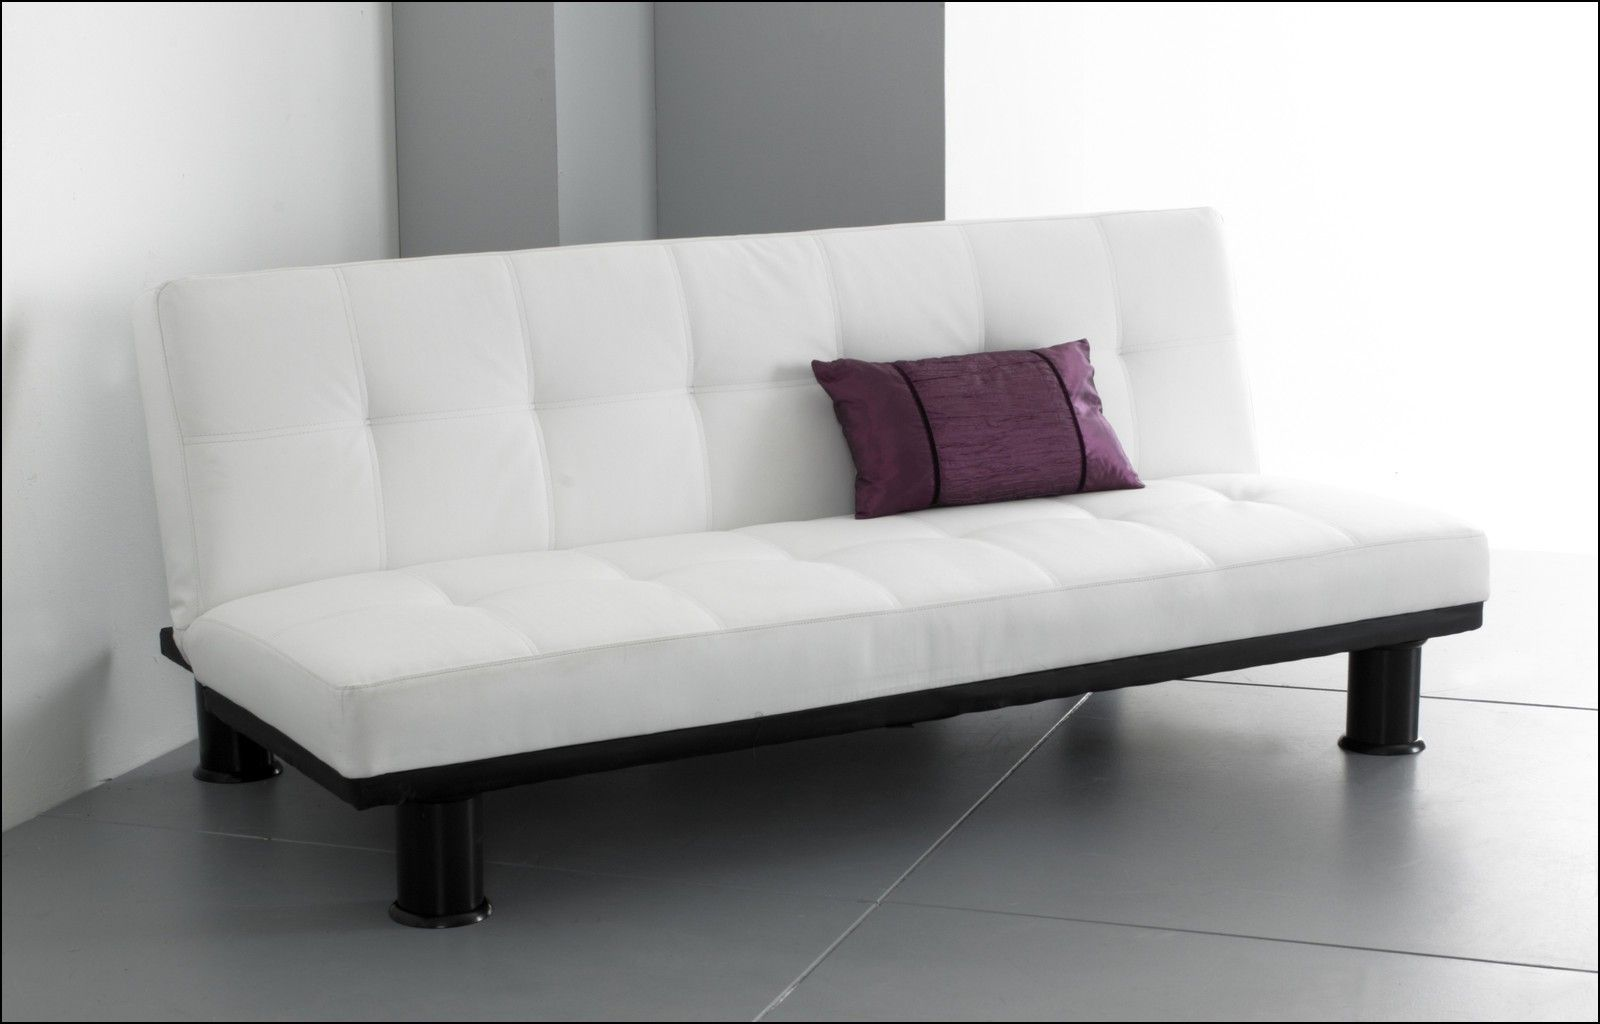 Awesome Designer Futons Sofa Beds House Sofa Bed Design Leather Beatyapartments Chair Design Images Beatyapartmentscom